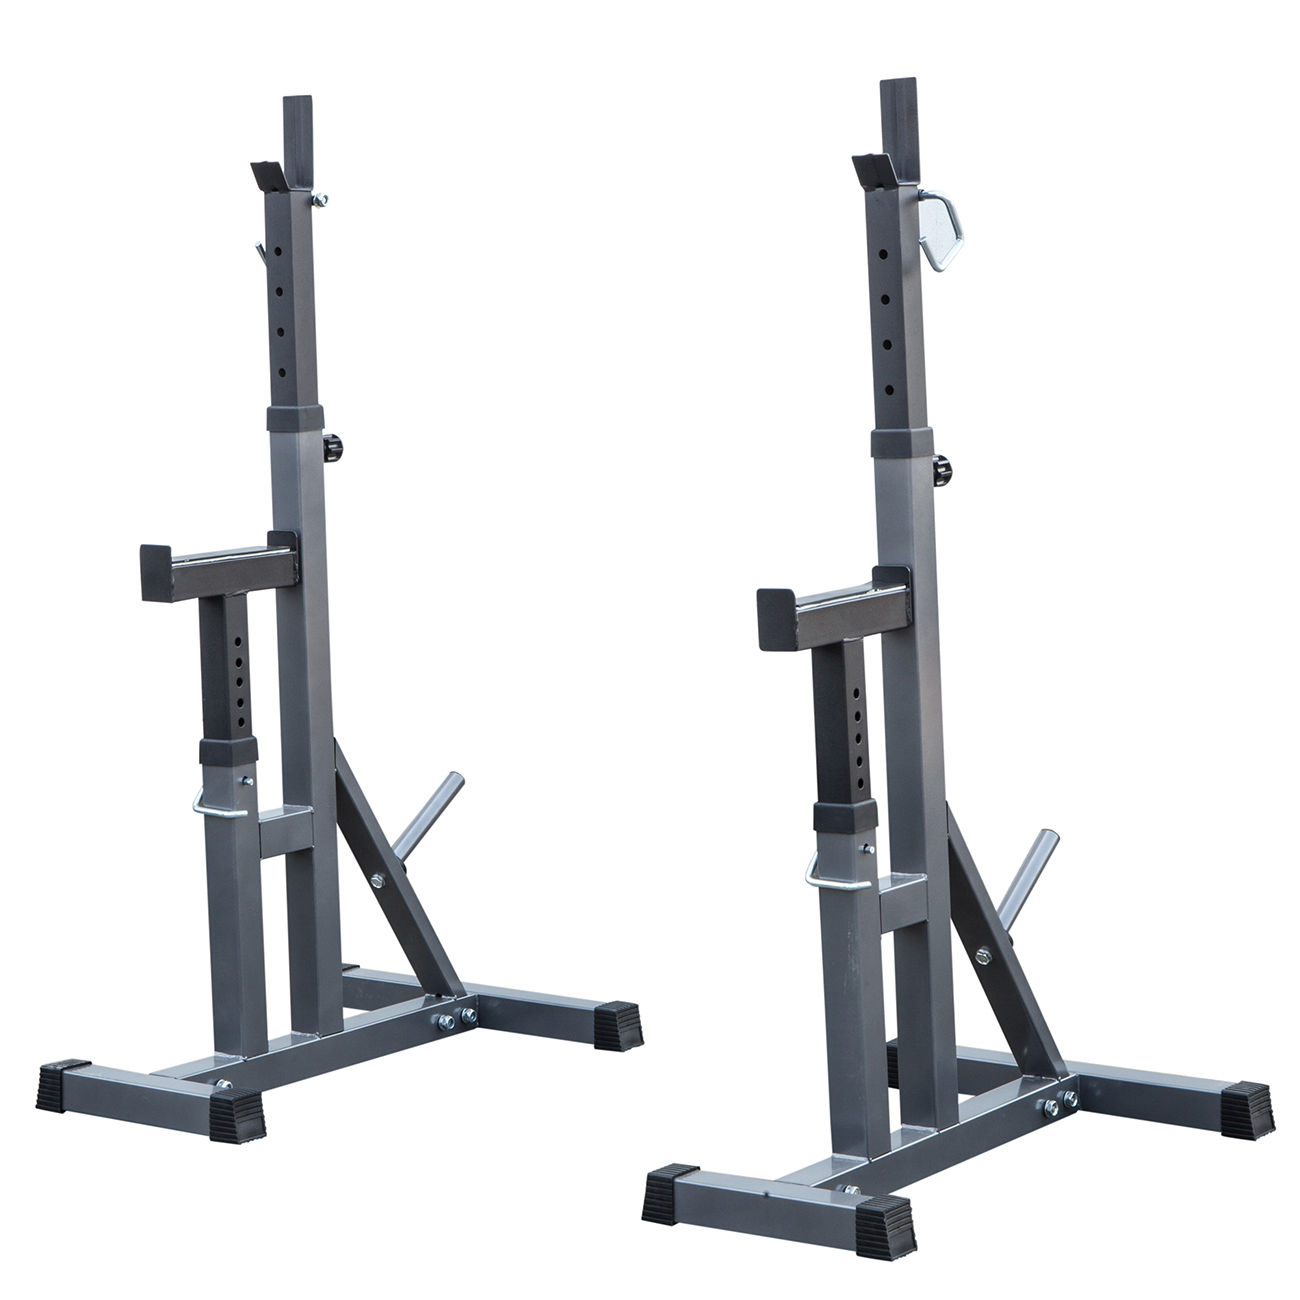 2 Pc Adjustable Rack Standard Steel Squat Stands Barbell Free Press Bench W Peg Work Out Wear